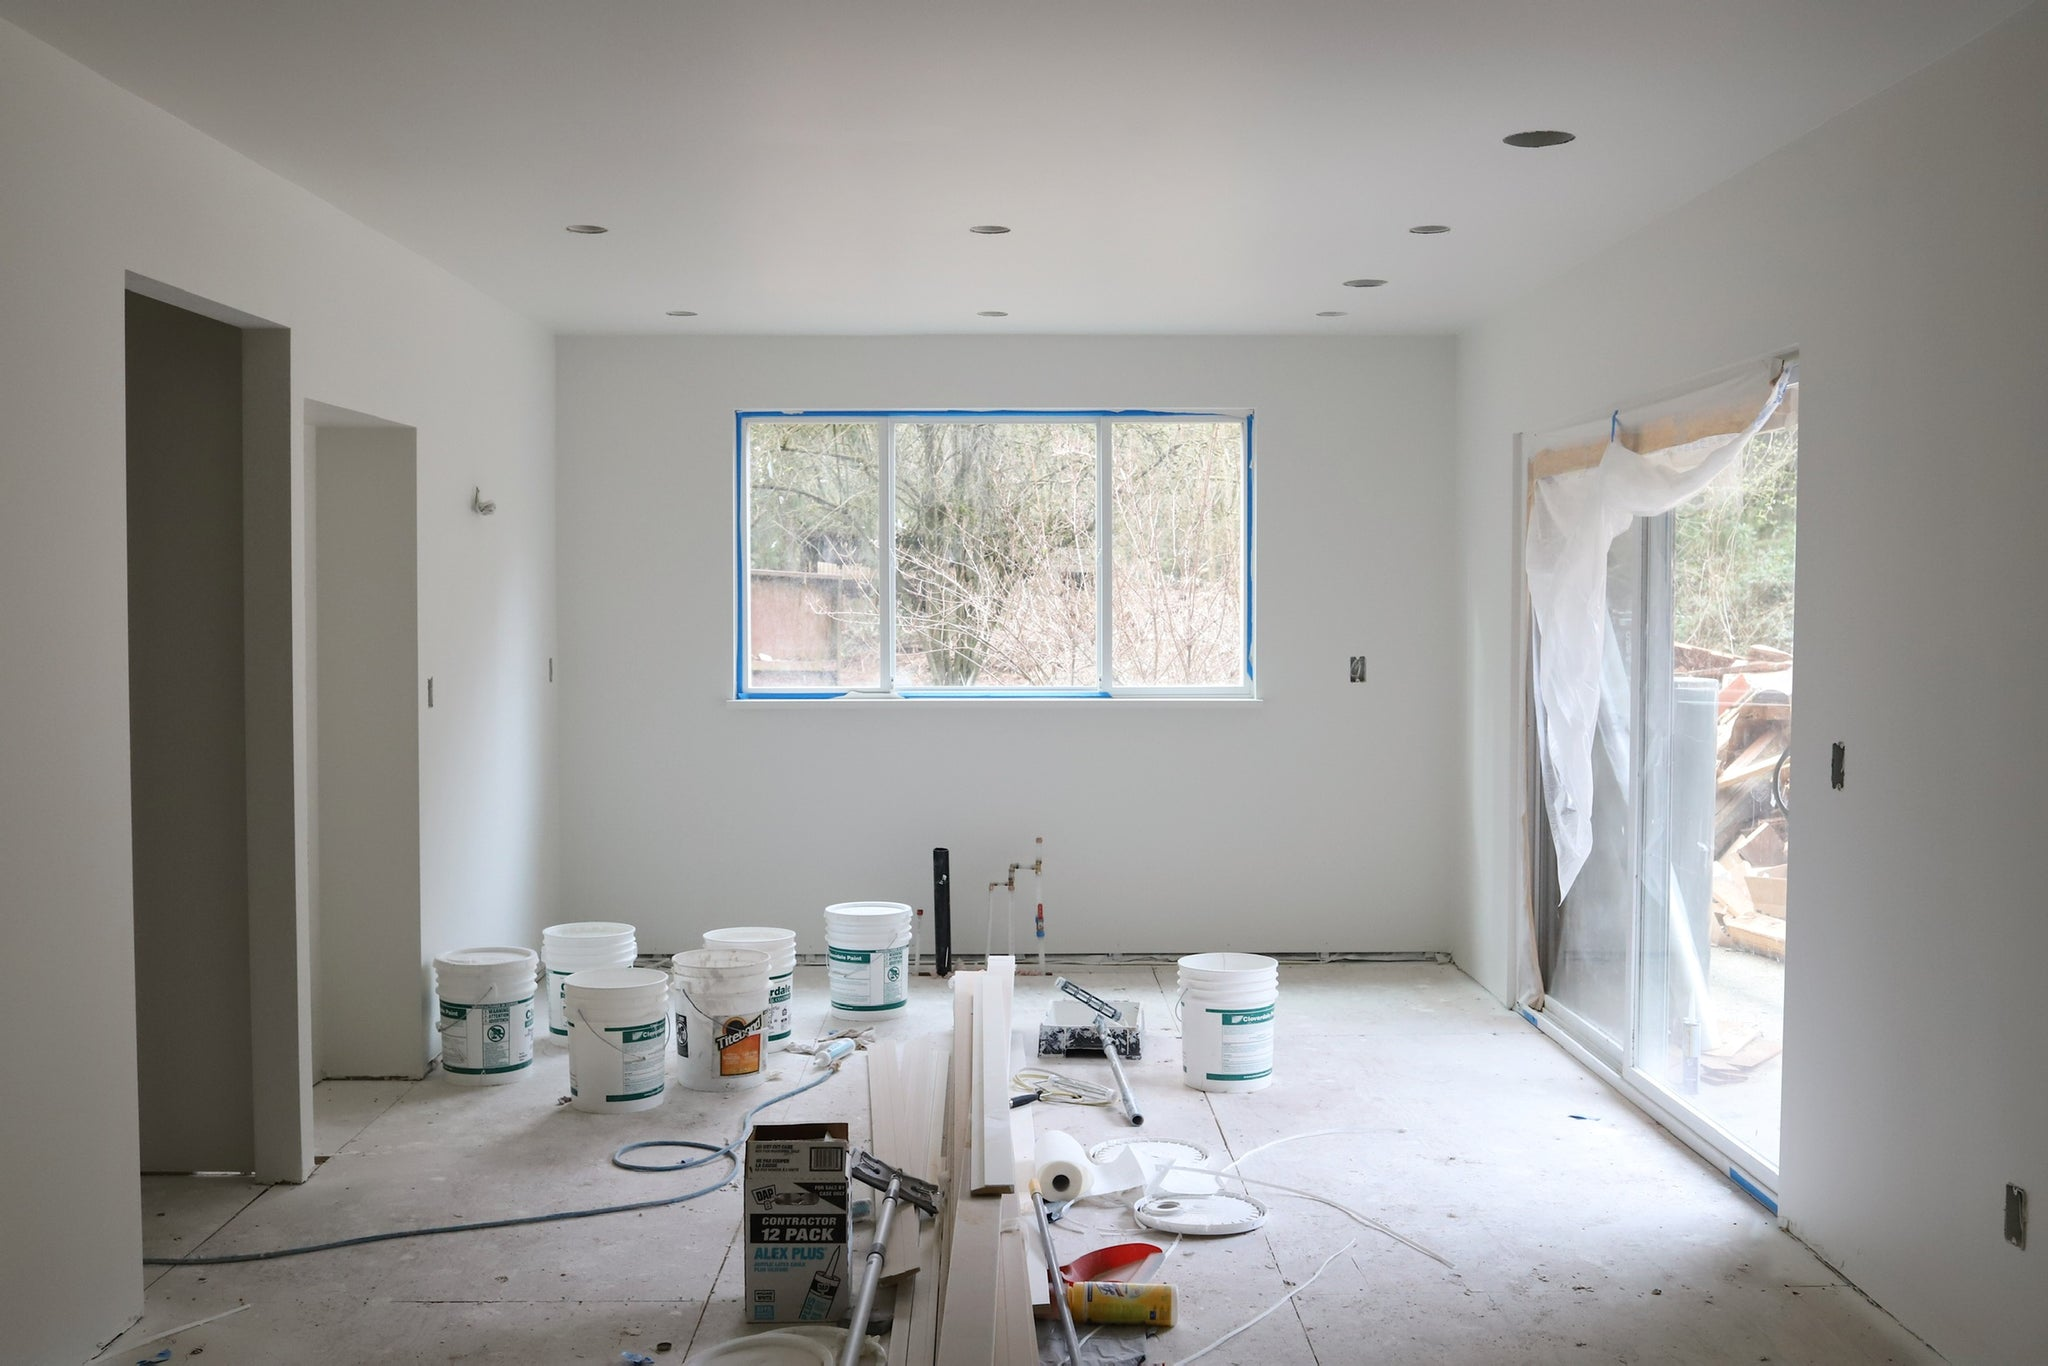 Home Reno Part 2: The In-Between